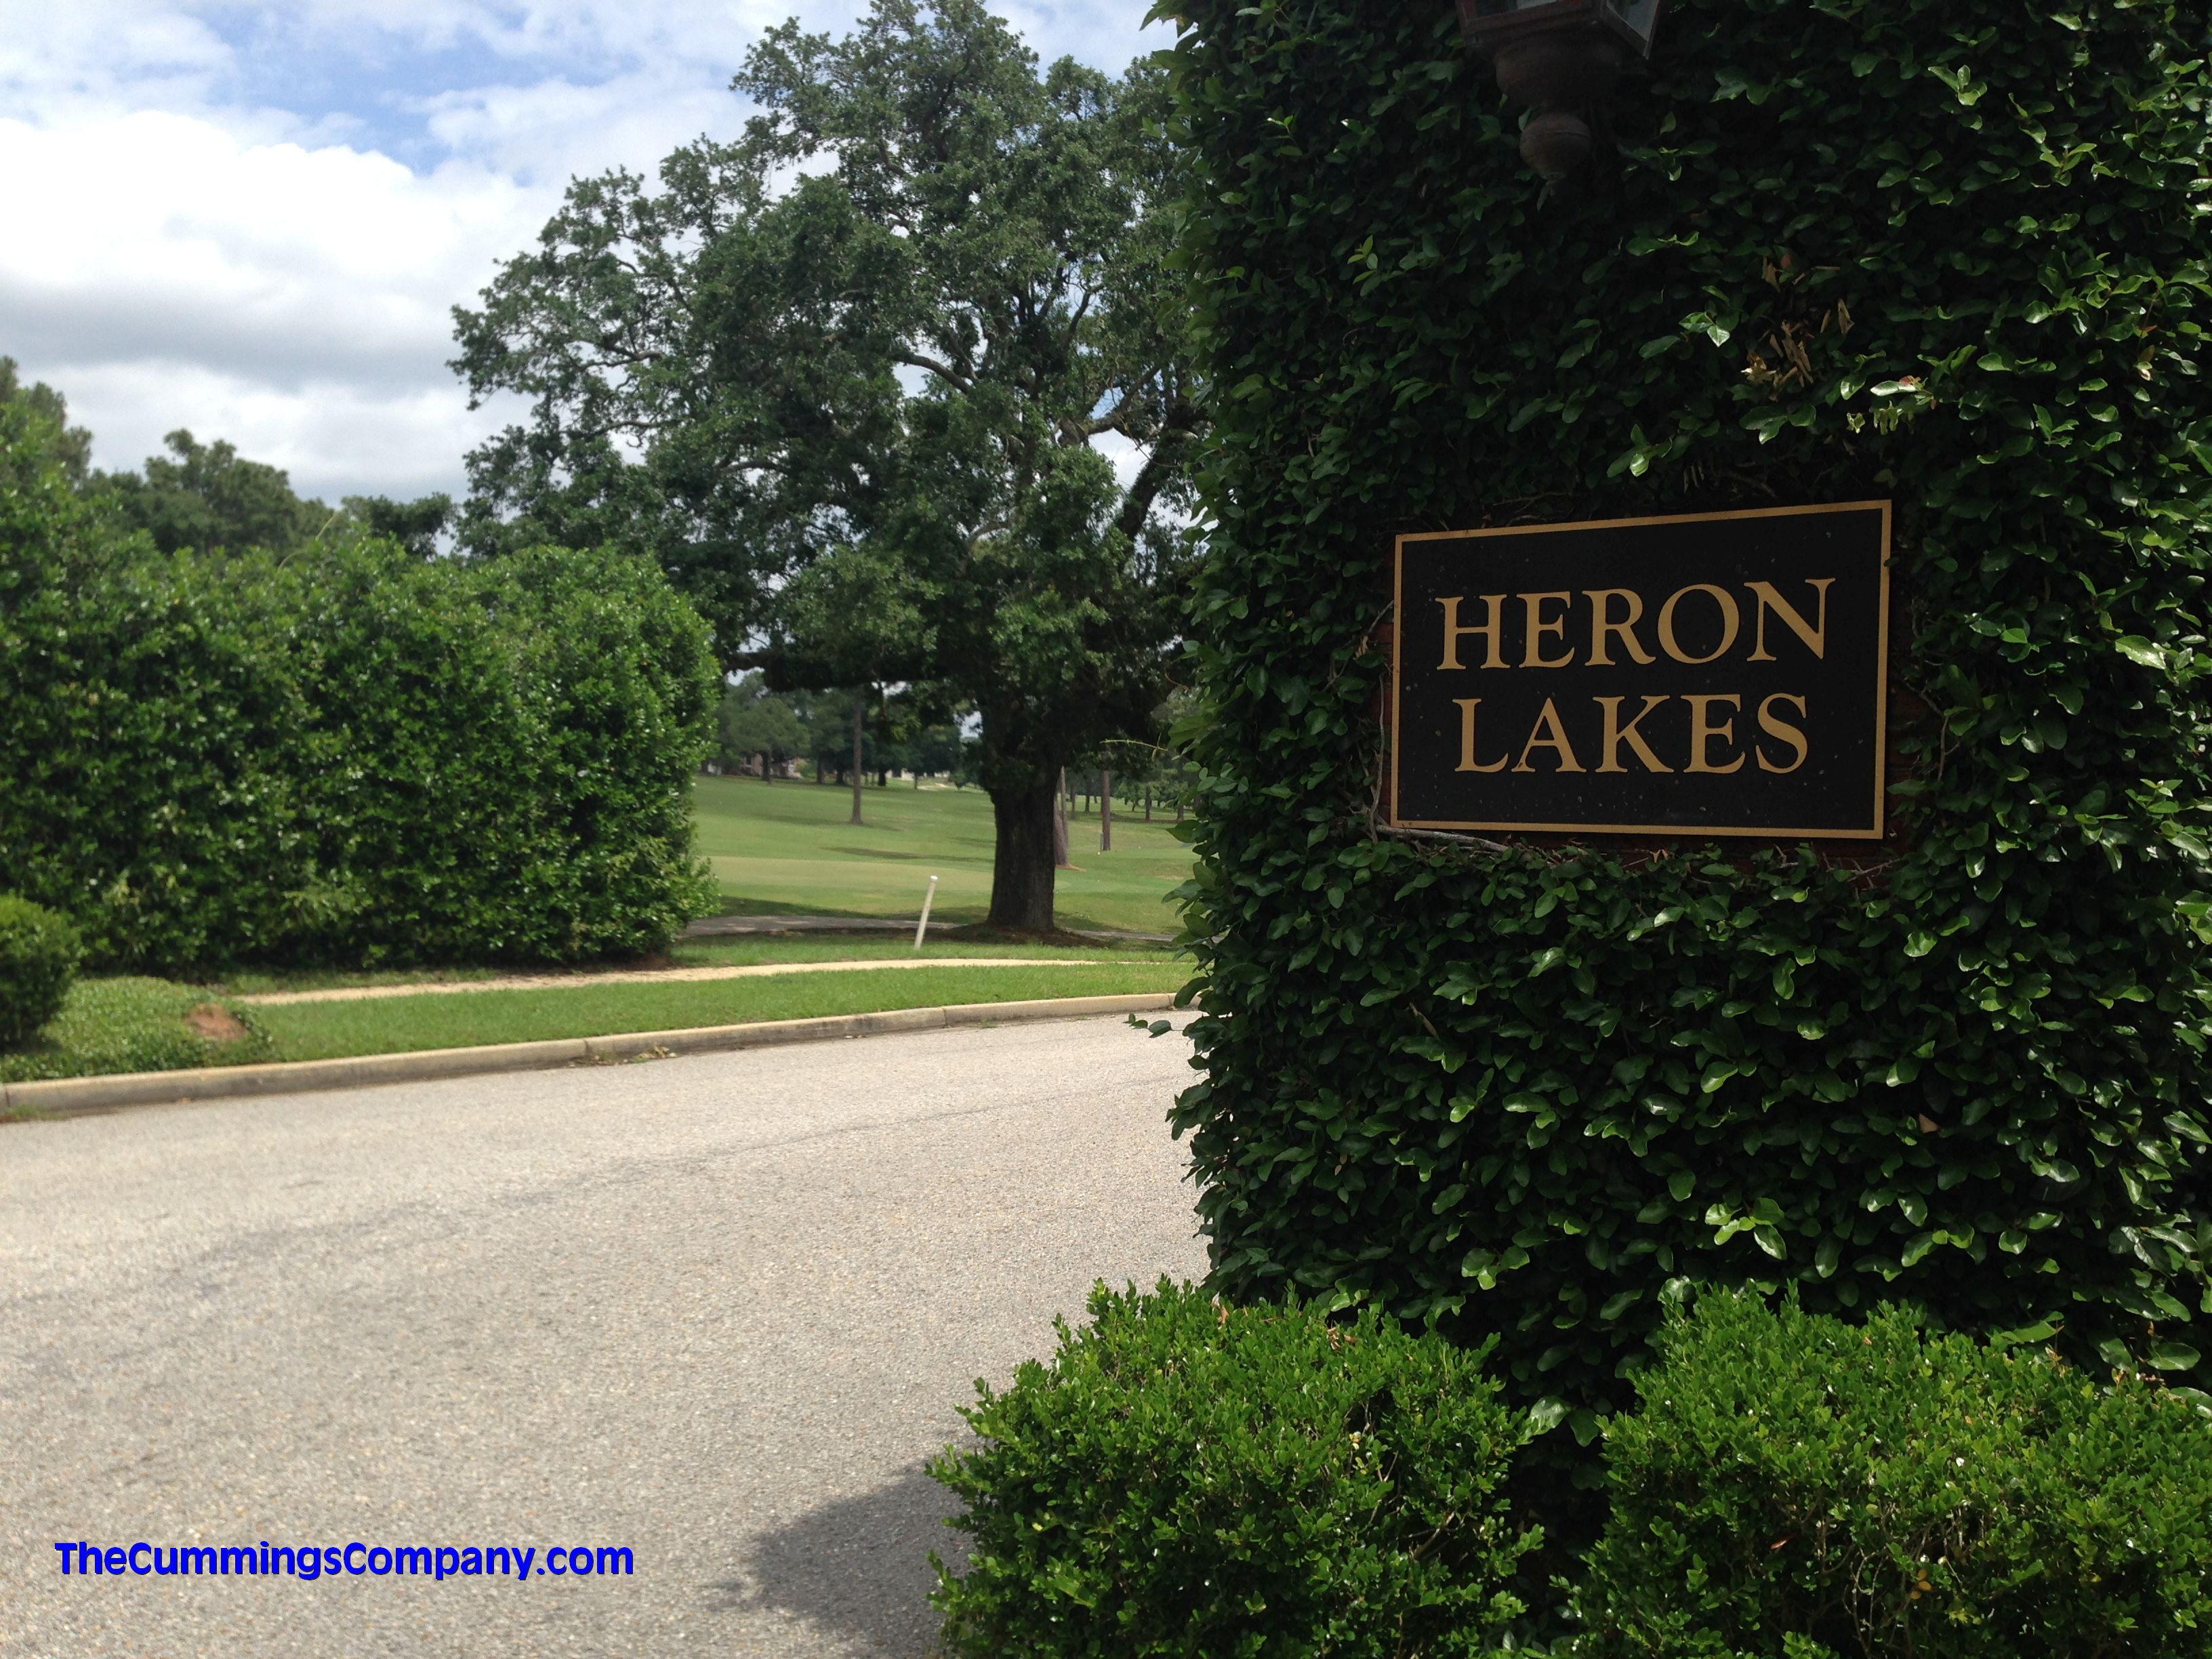 Heron lakes in mobile al homes for sale market report for Home builders in mobile al